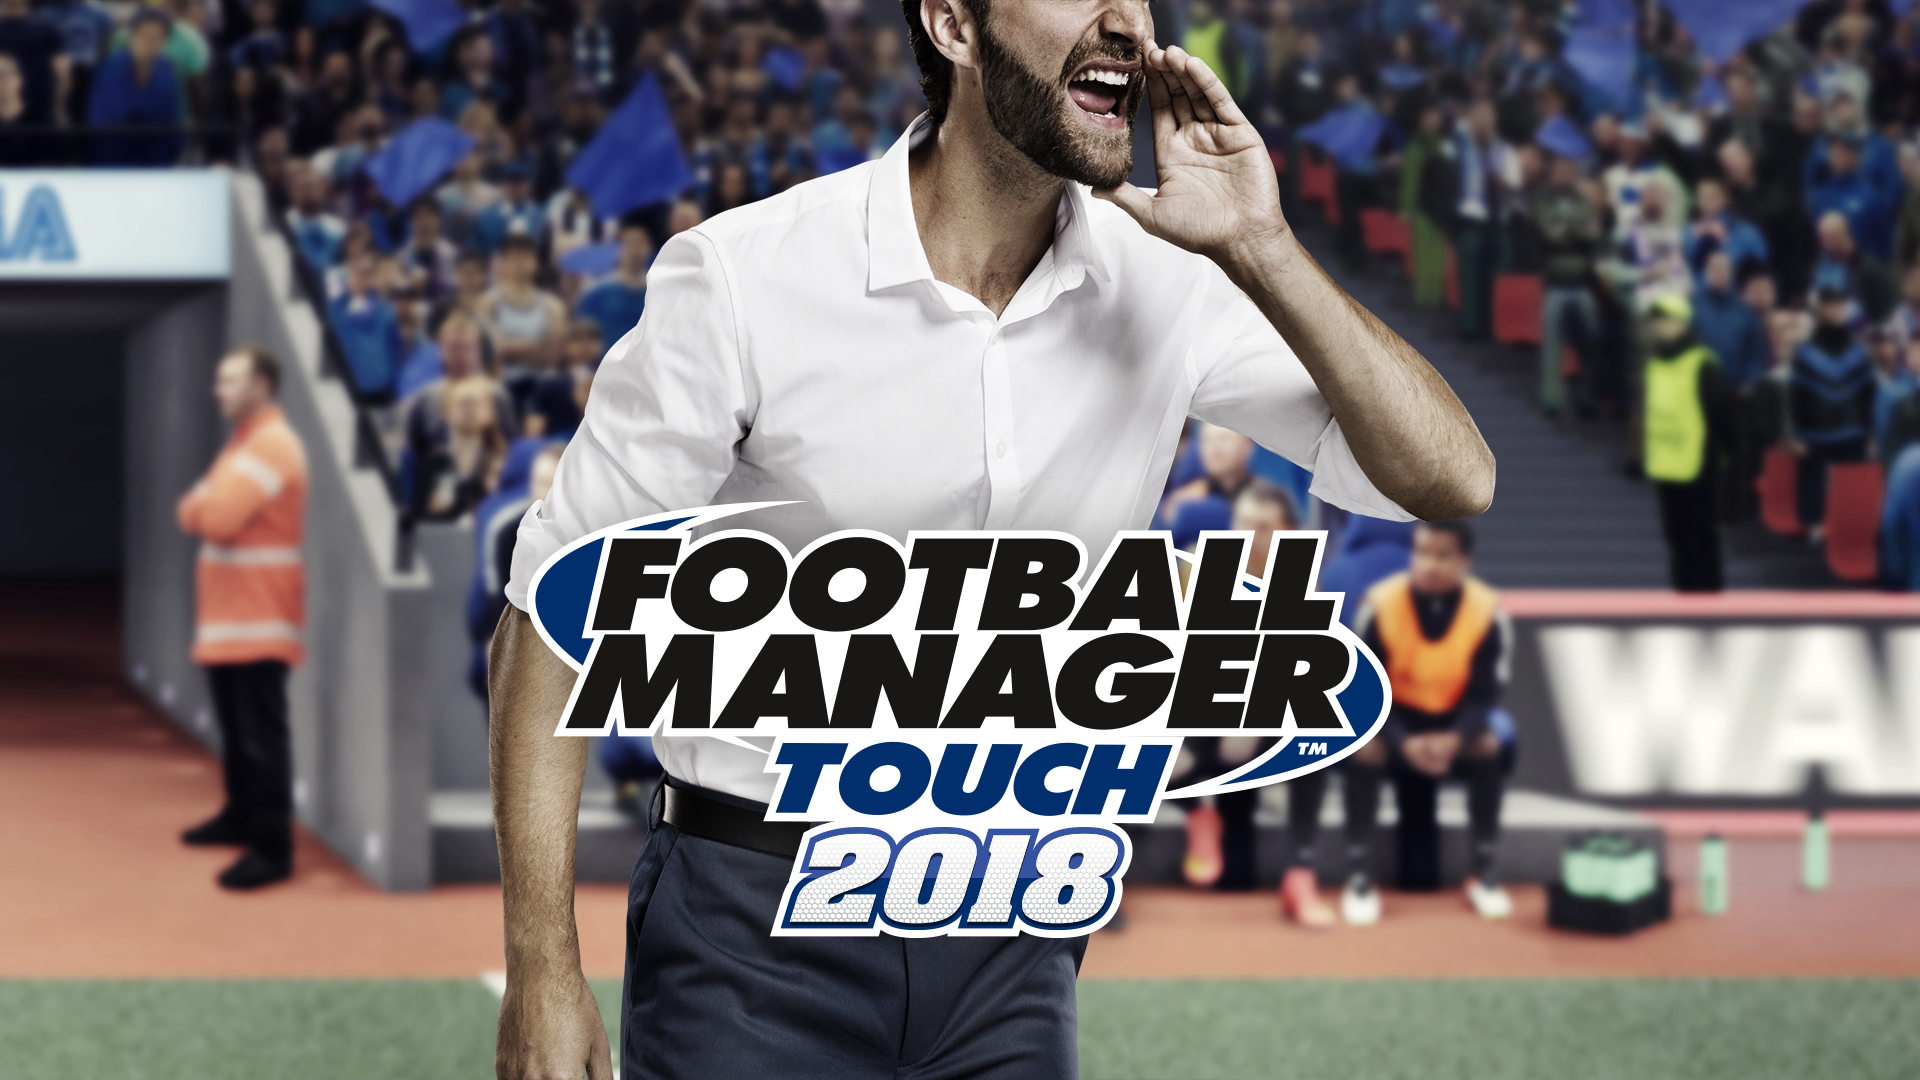 Football Manager Touch 2018: In arrivo la versione Switch?